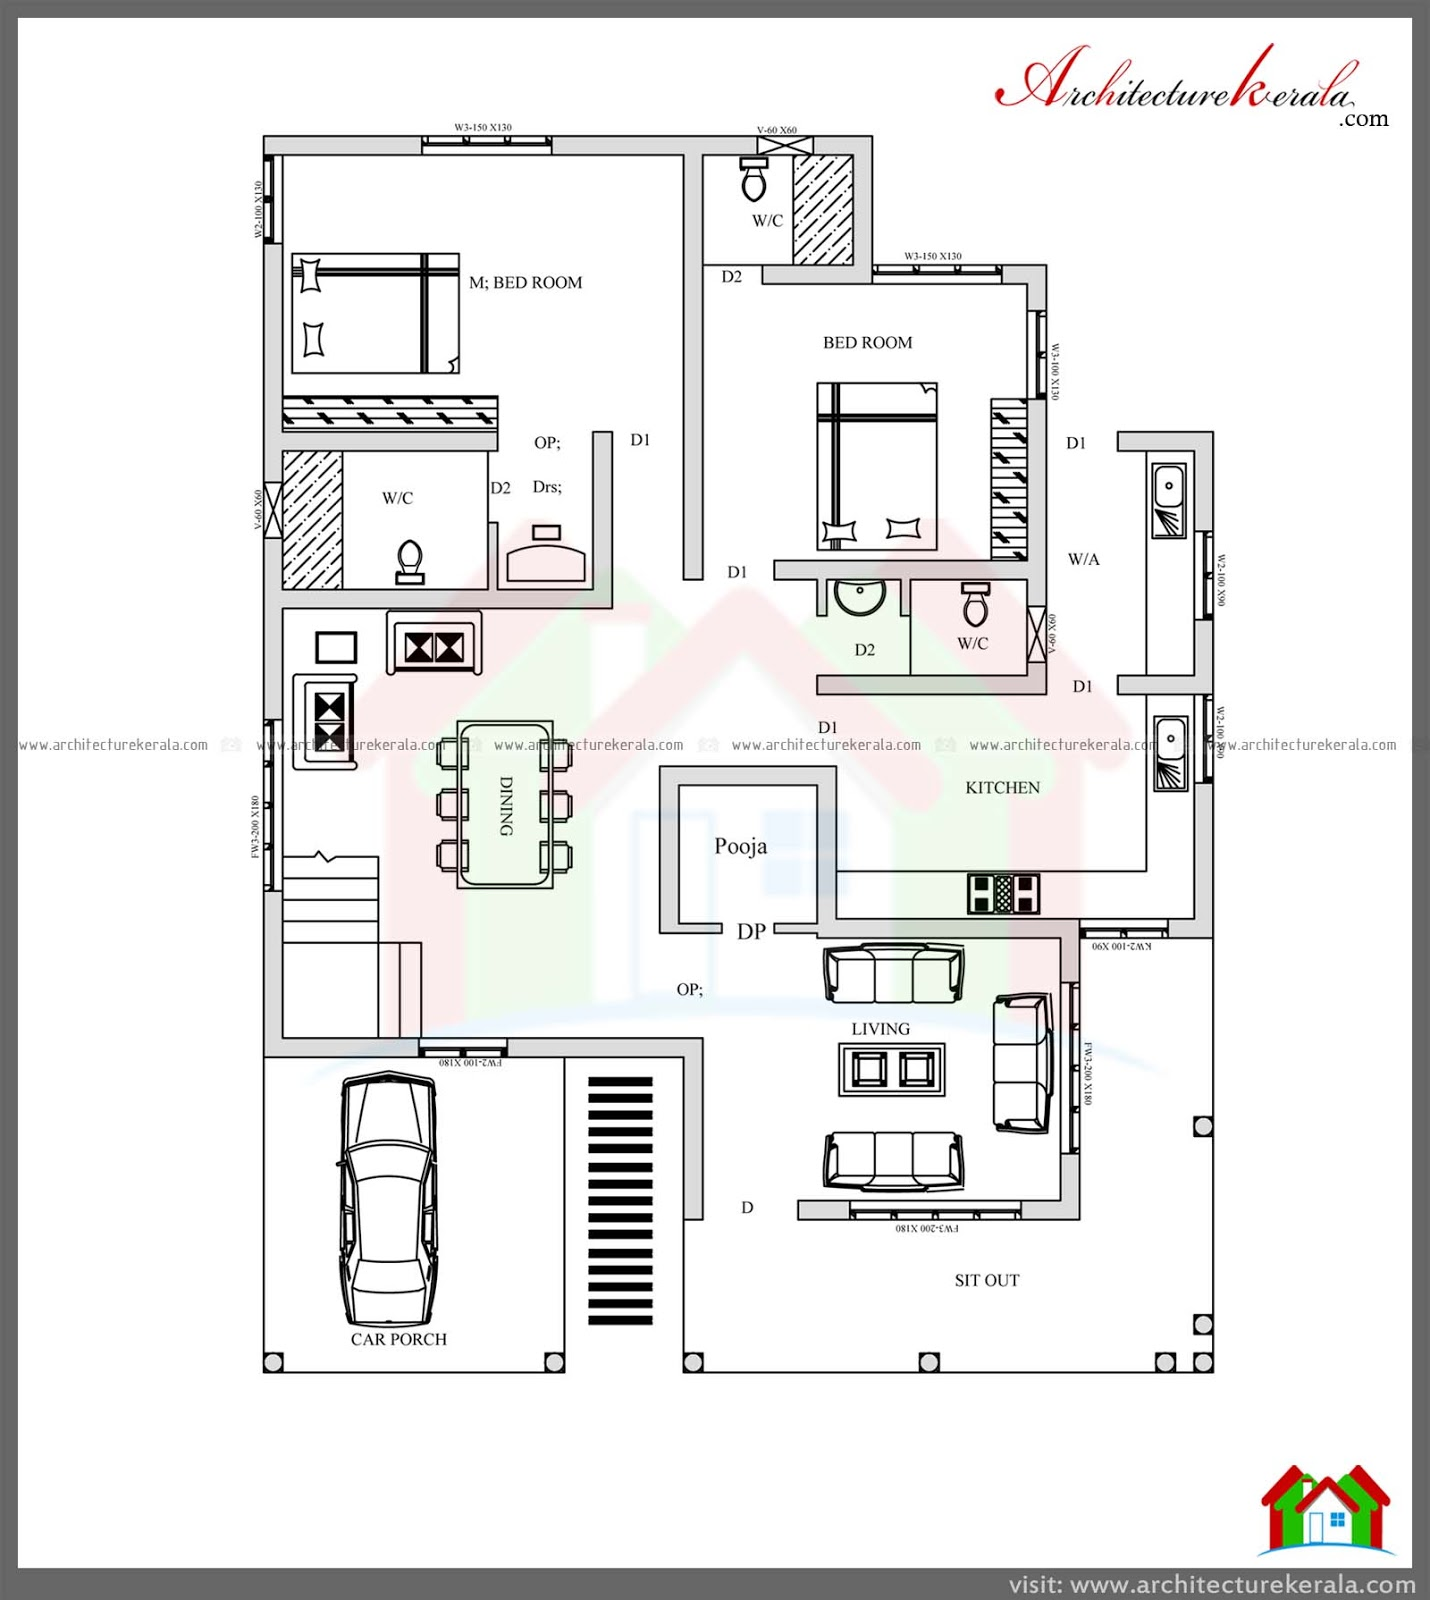 Stunning 4 bedroom kerala home design with pooja room free for Kerala home plan